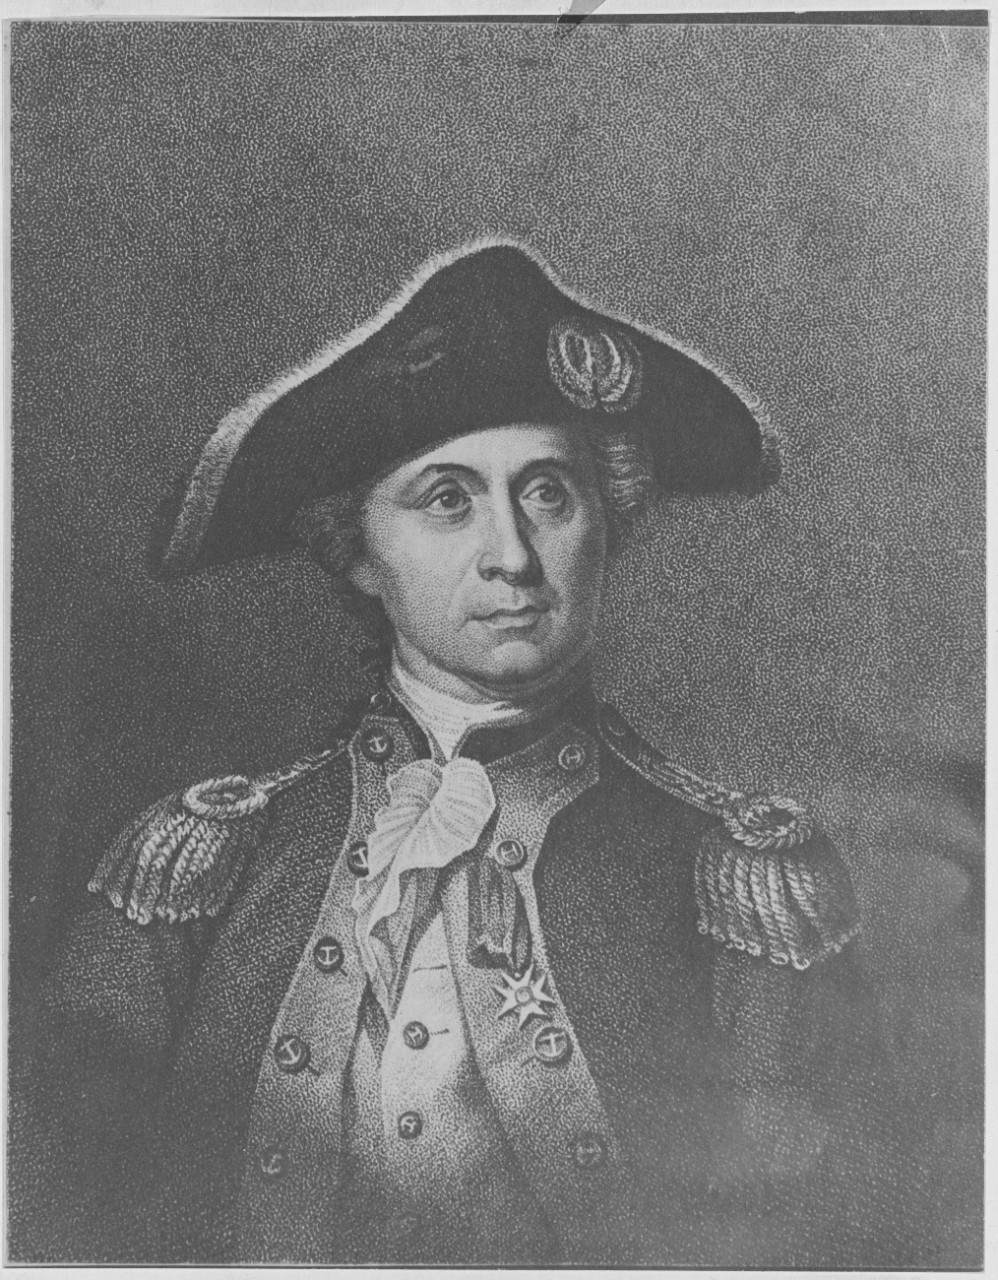 Captain John Paul Jones, USN